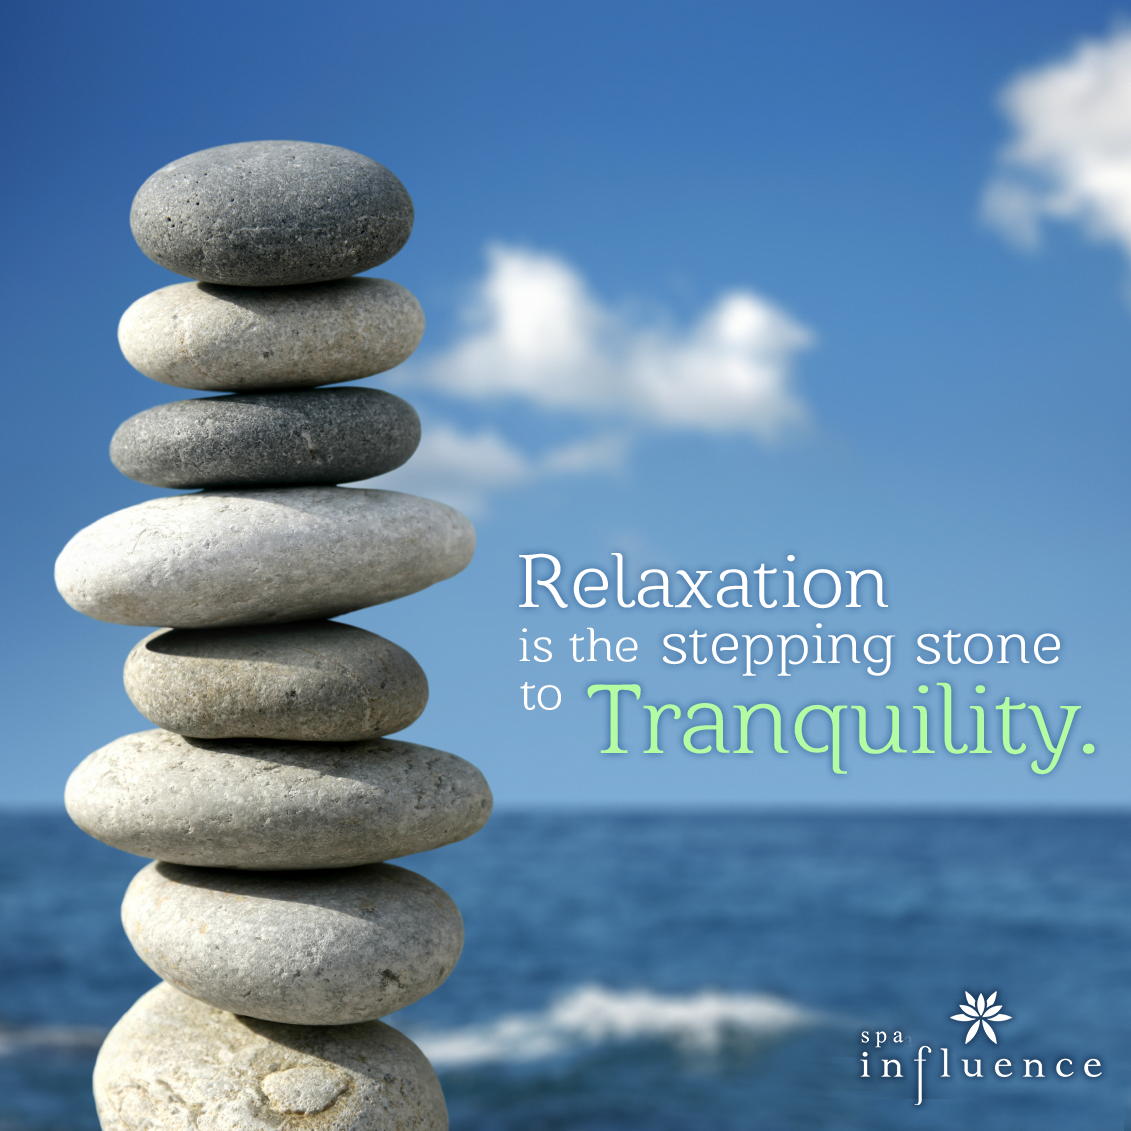 Relax Stone: Relaxation Is The Stepping Stone To Tranquility #spa